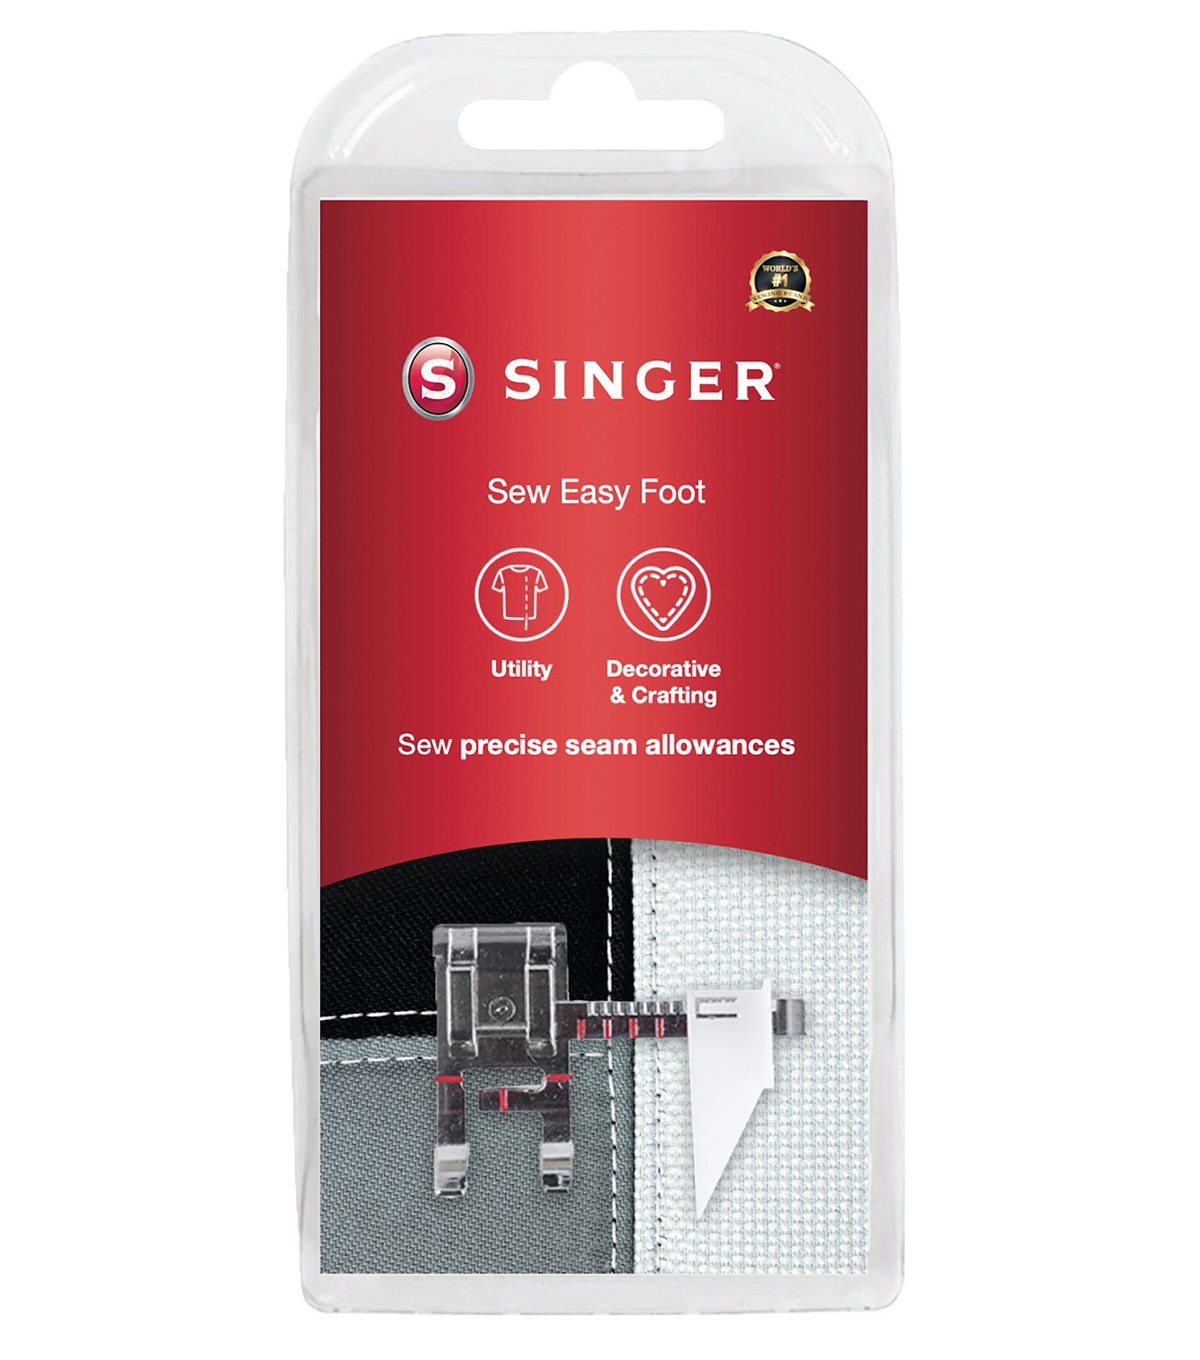 Singer Sew Easy Foot